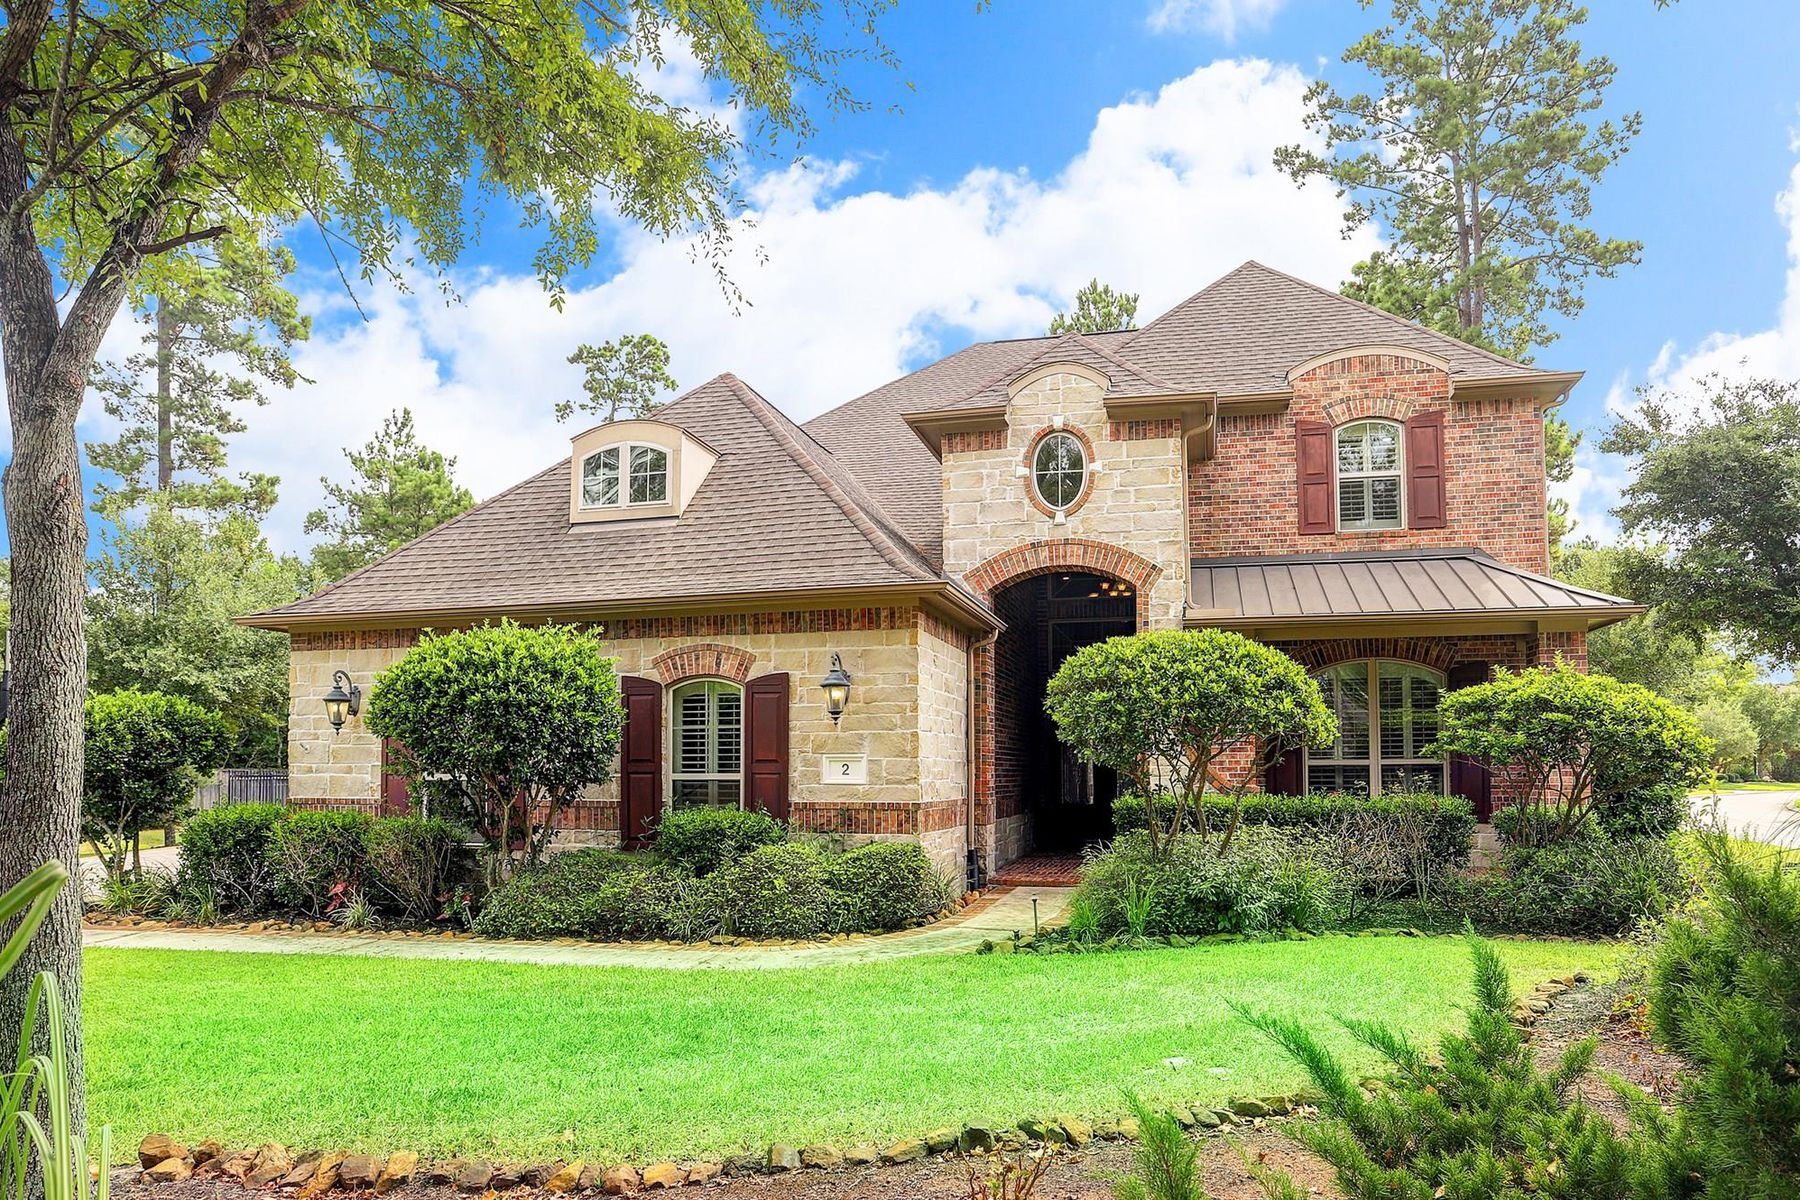 Single Family Homes for Sale at 2 Mountain Mistral Place The Woodlands, Texas 77382 United States